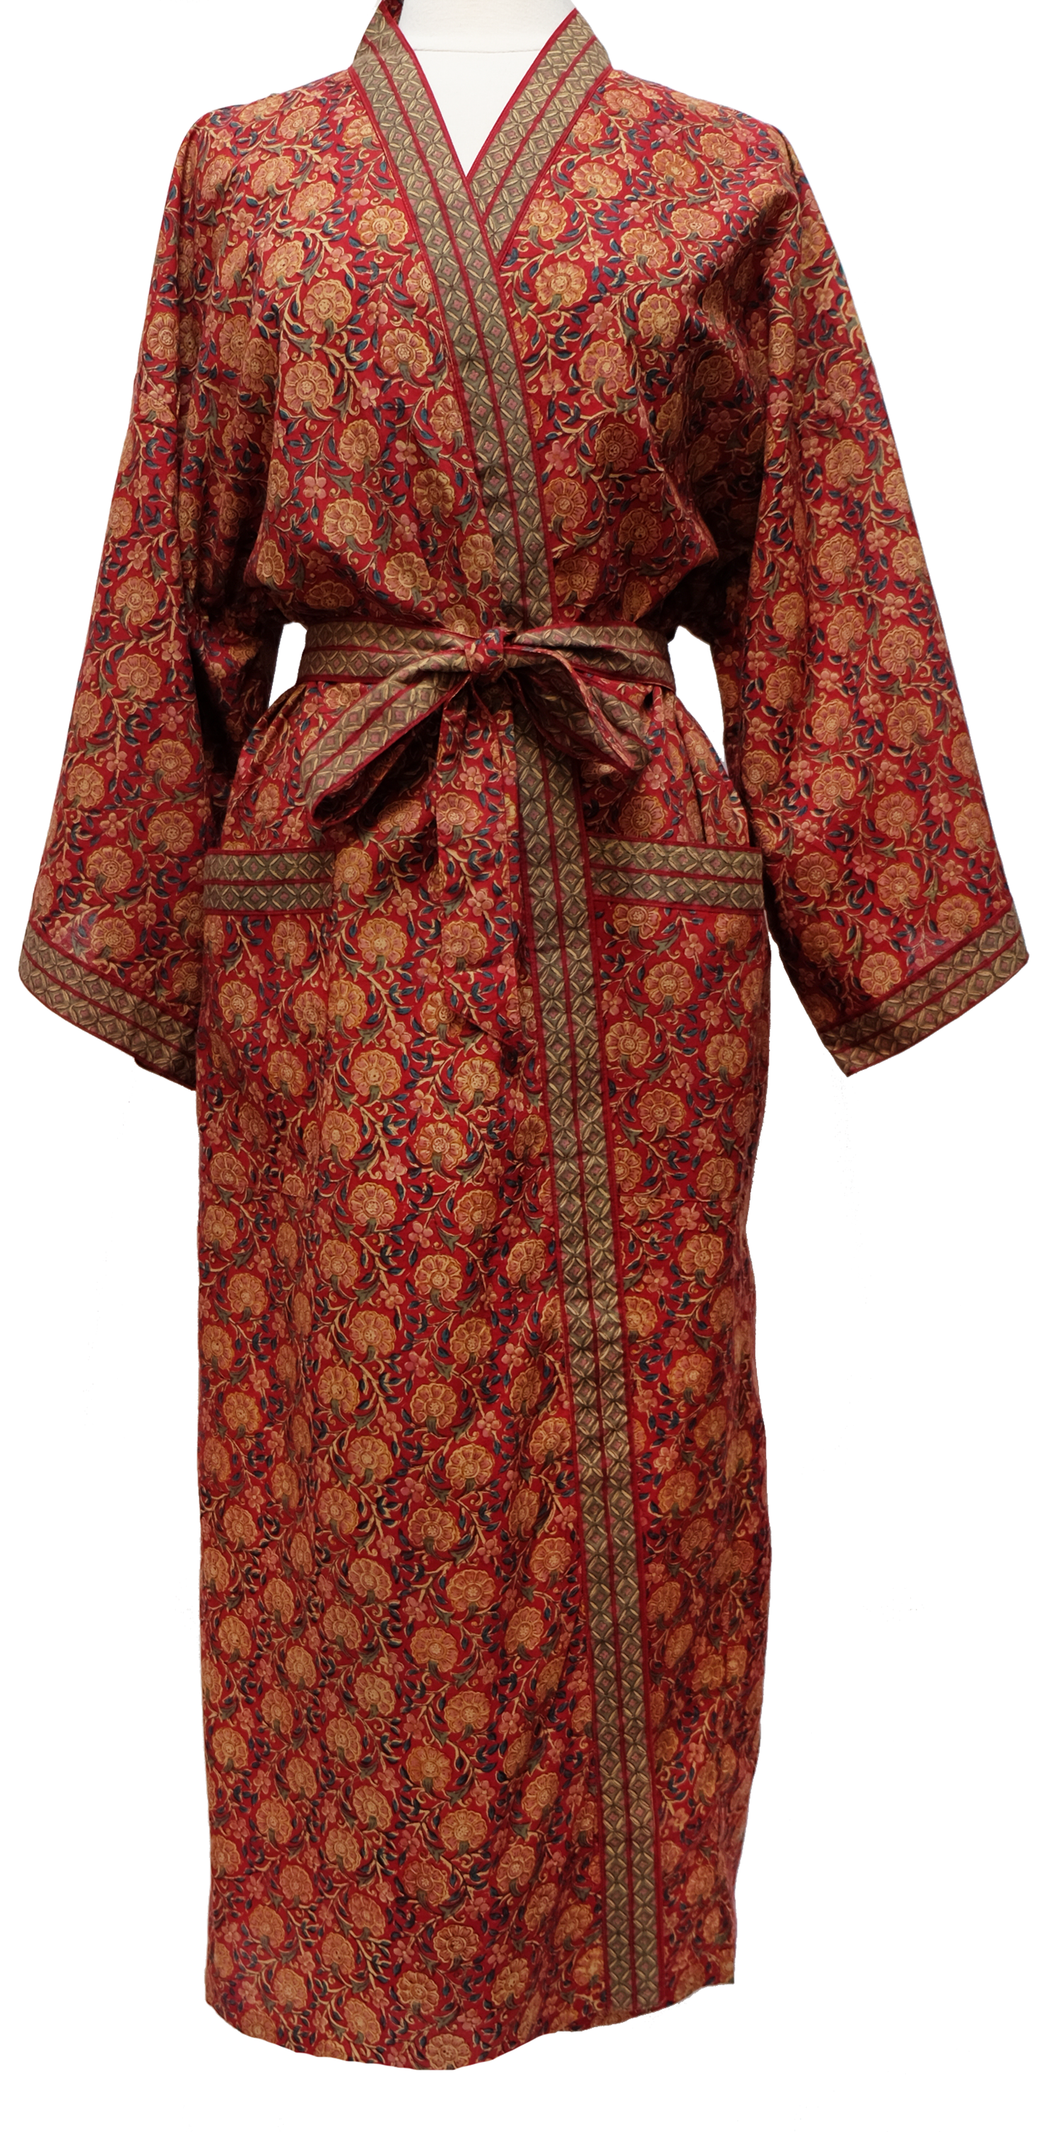 Long Kimono Robe - Bloom Red- free size - Anokhi